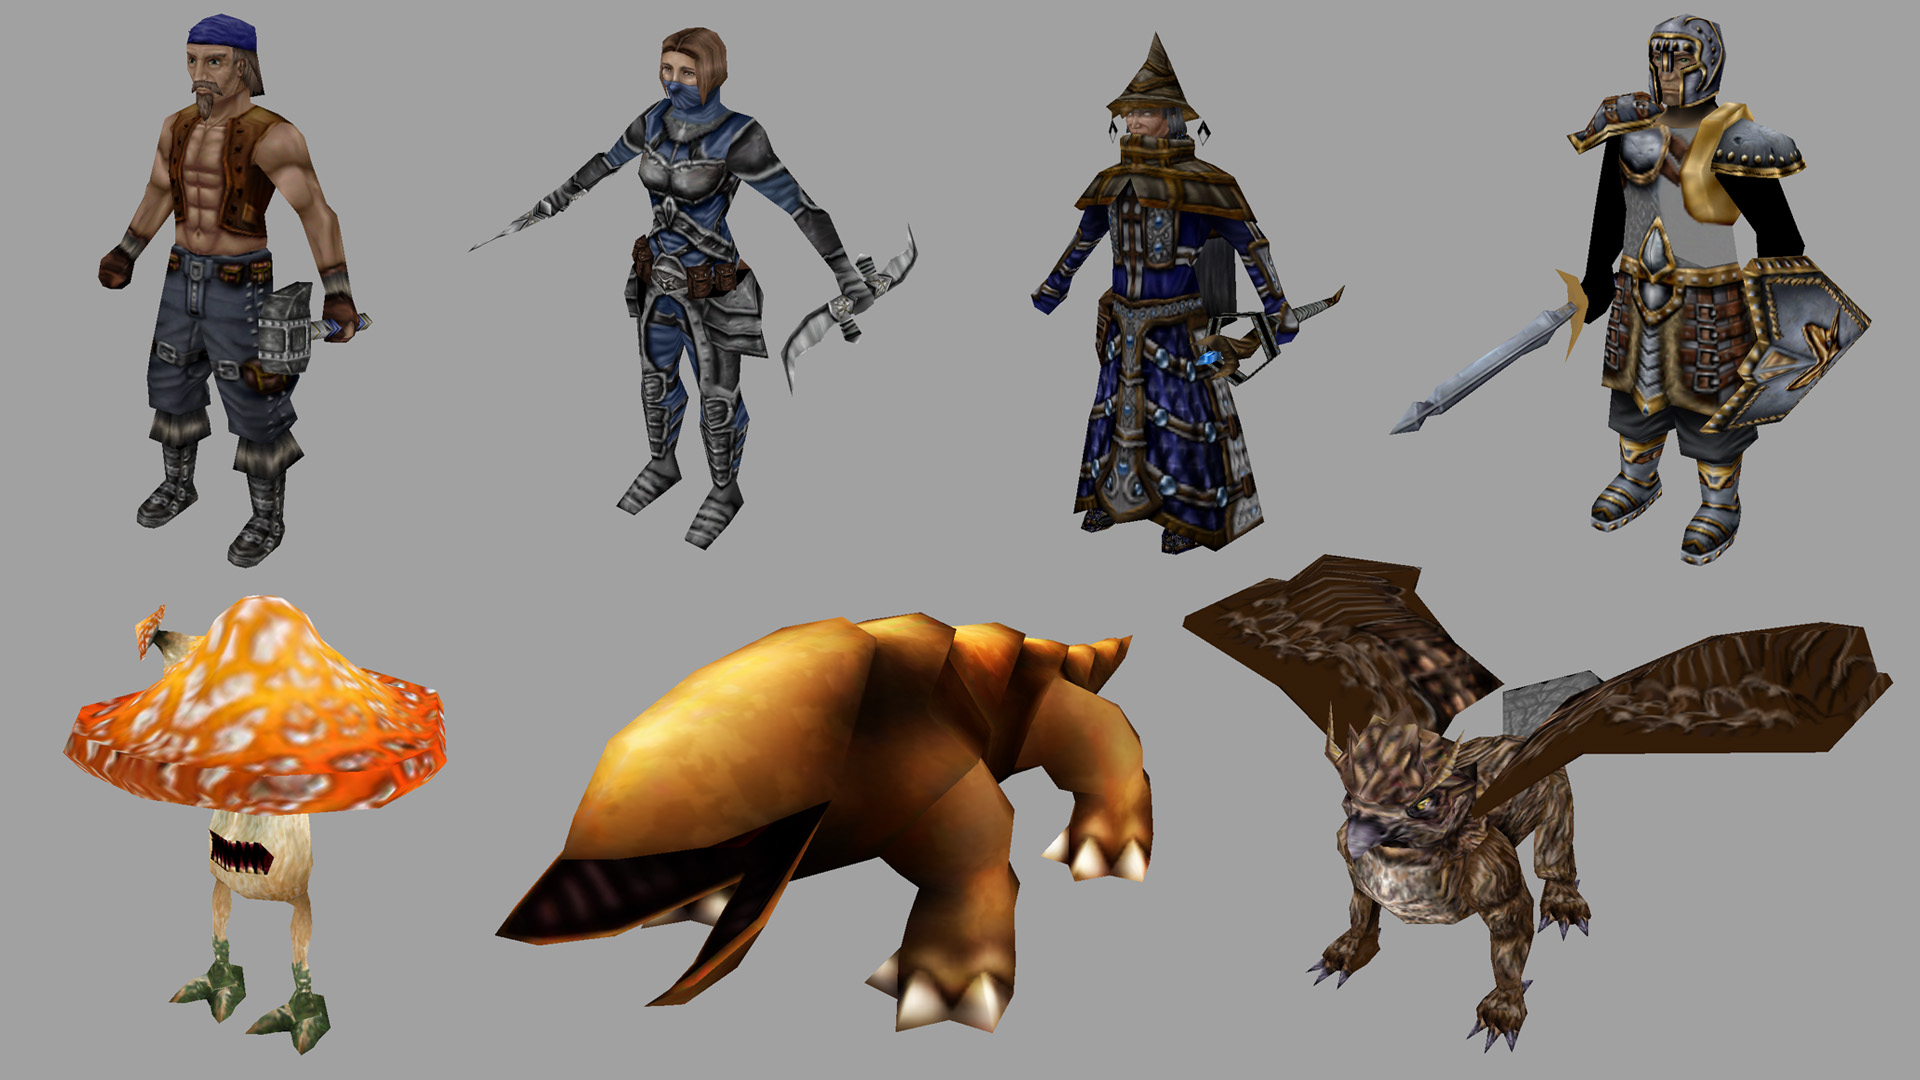 100 free fantasy assets by digital roar studios file unity games